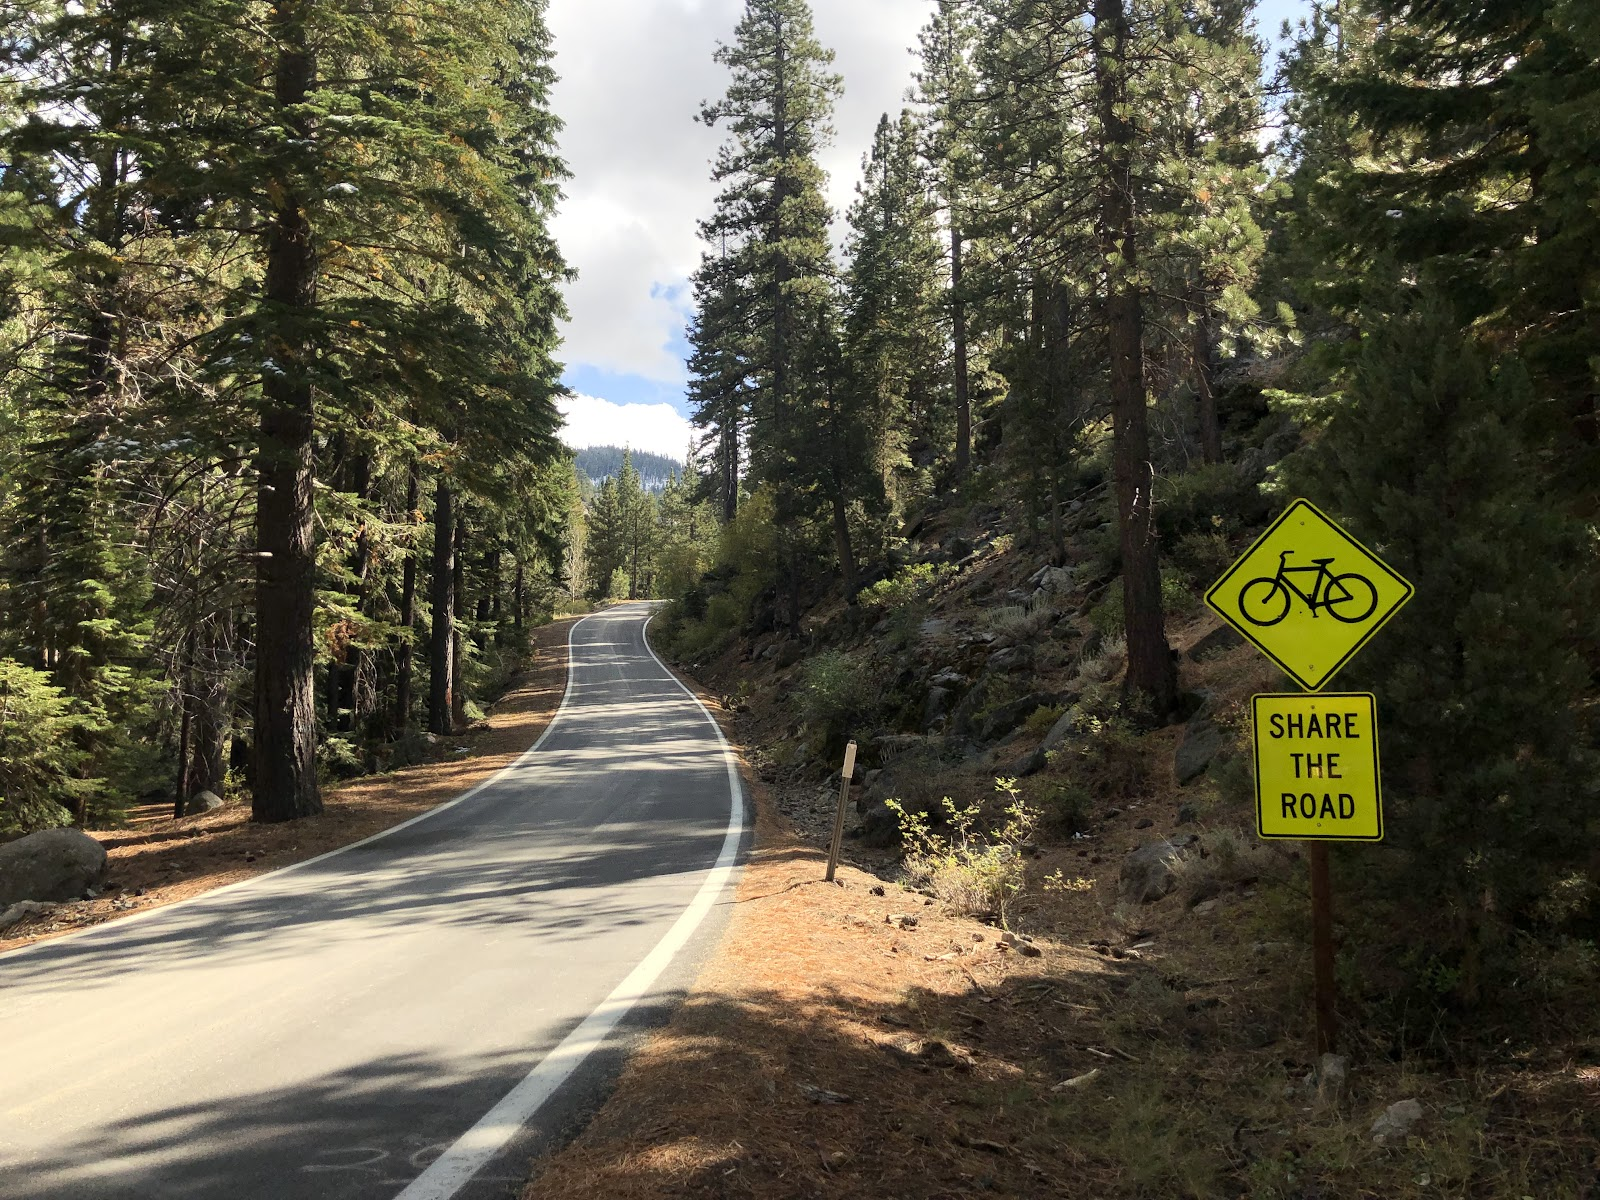 bicycle ride Ebbetts Pass - share the road sign